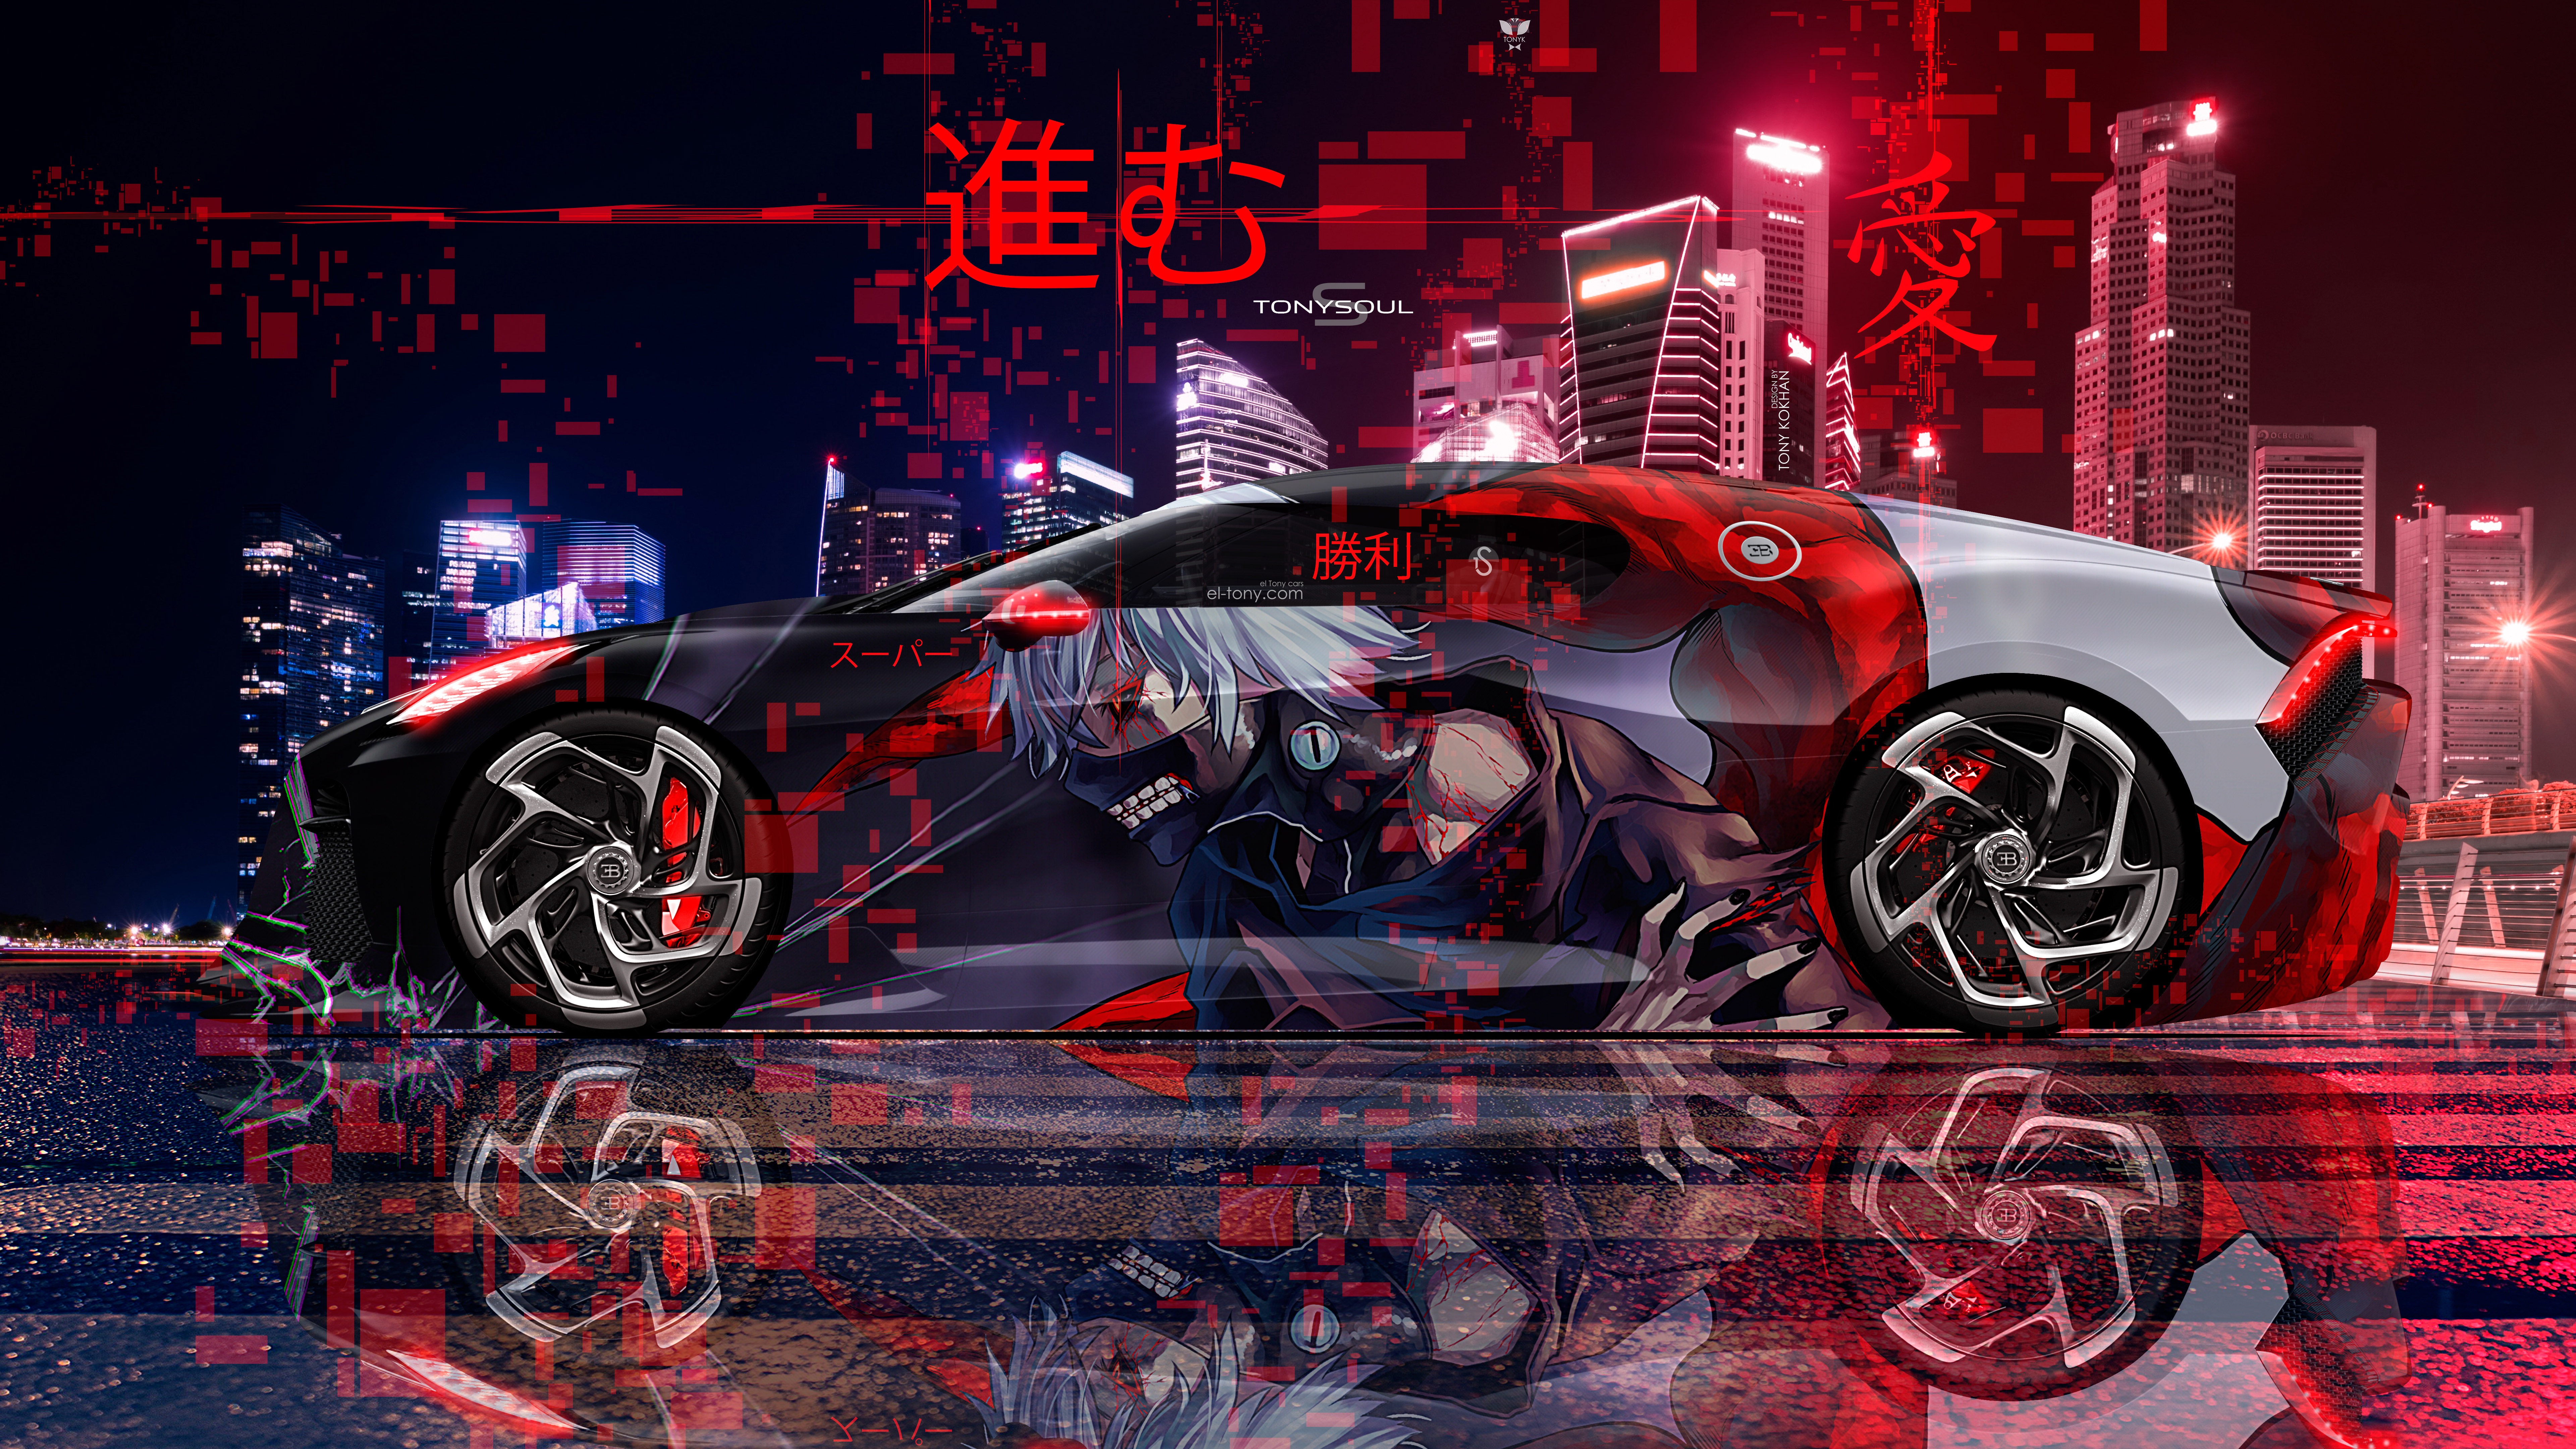 Bugatti-La-Voiture-Noire-Super-Anime-Ken-Kaneki-Super-Love-Victory-Move-On-TonySoul-Night-City-Art-Car-2019-Multicolors-8K-Wallpapers-design-by-Tony-Kokhan-www.el-tony.com-image